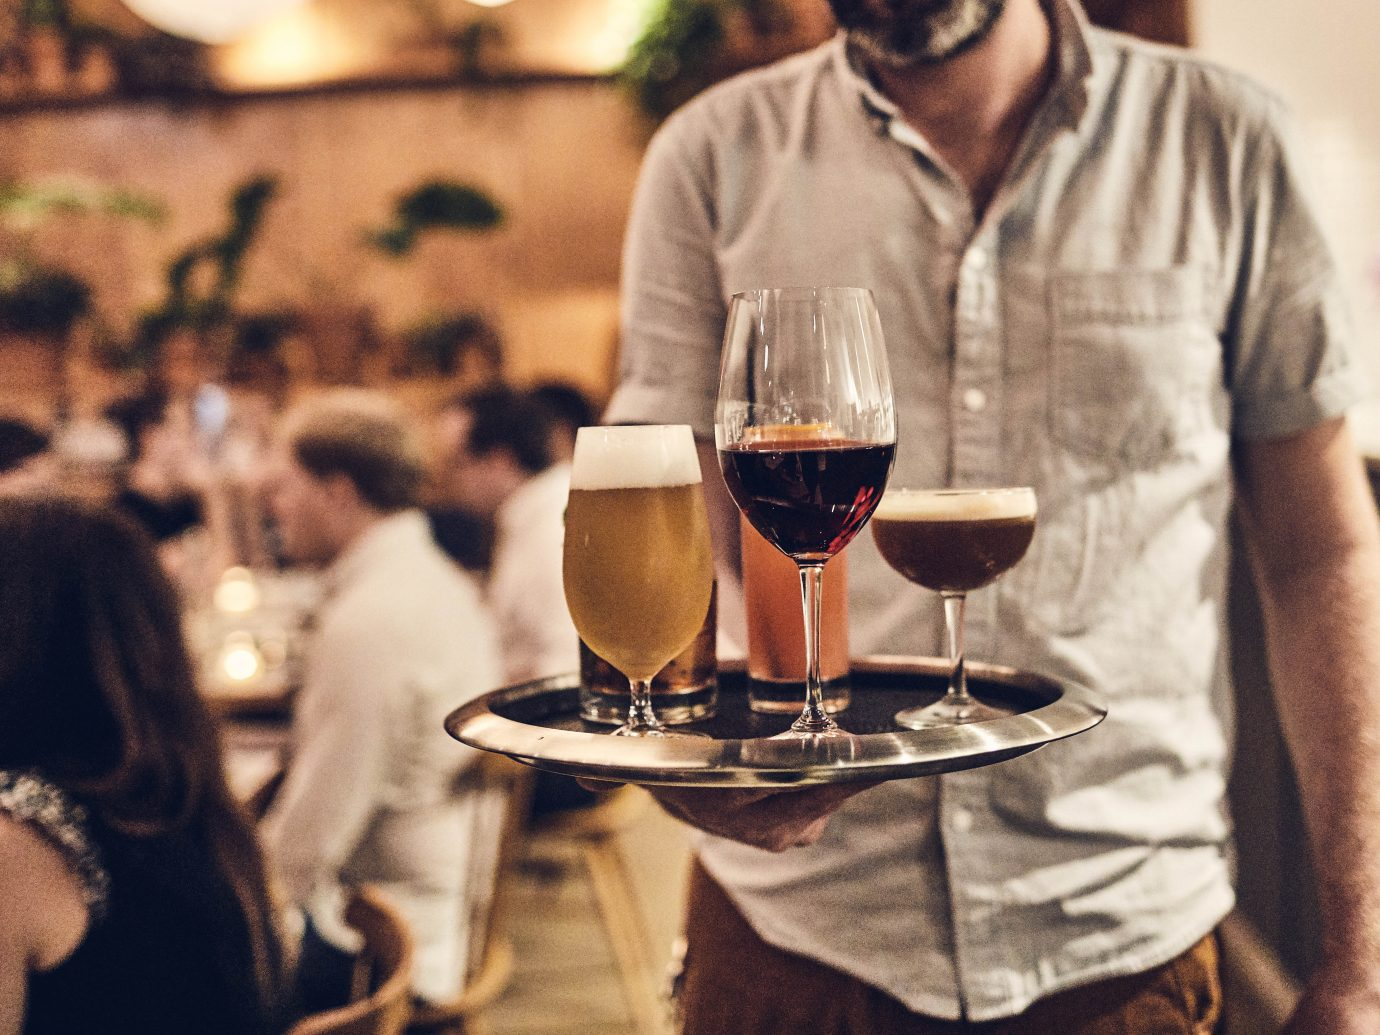 Serving walking to table in packed restaurant interior with tray of drinks